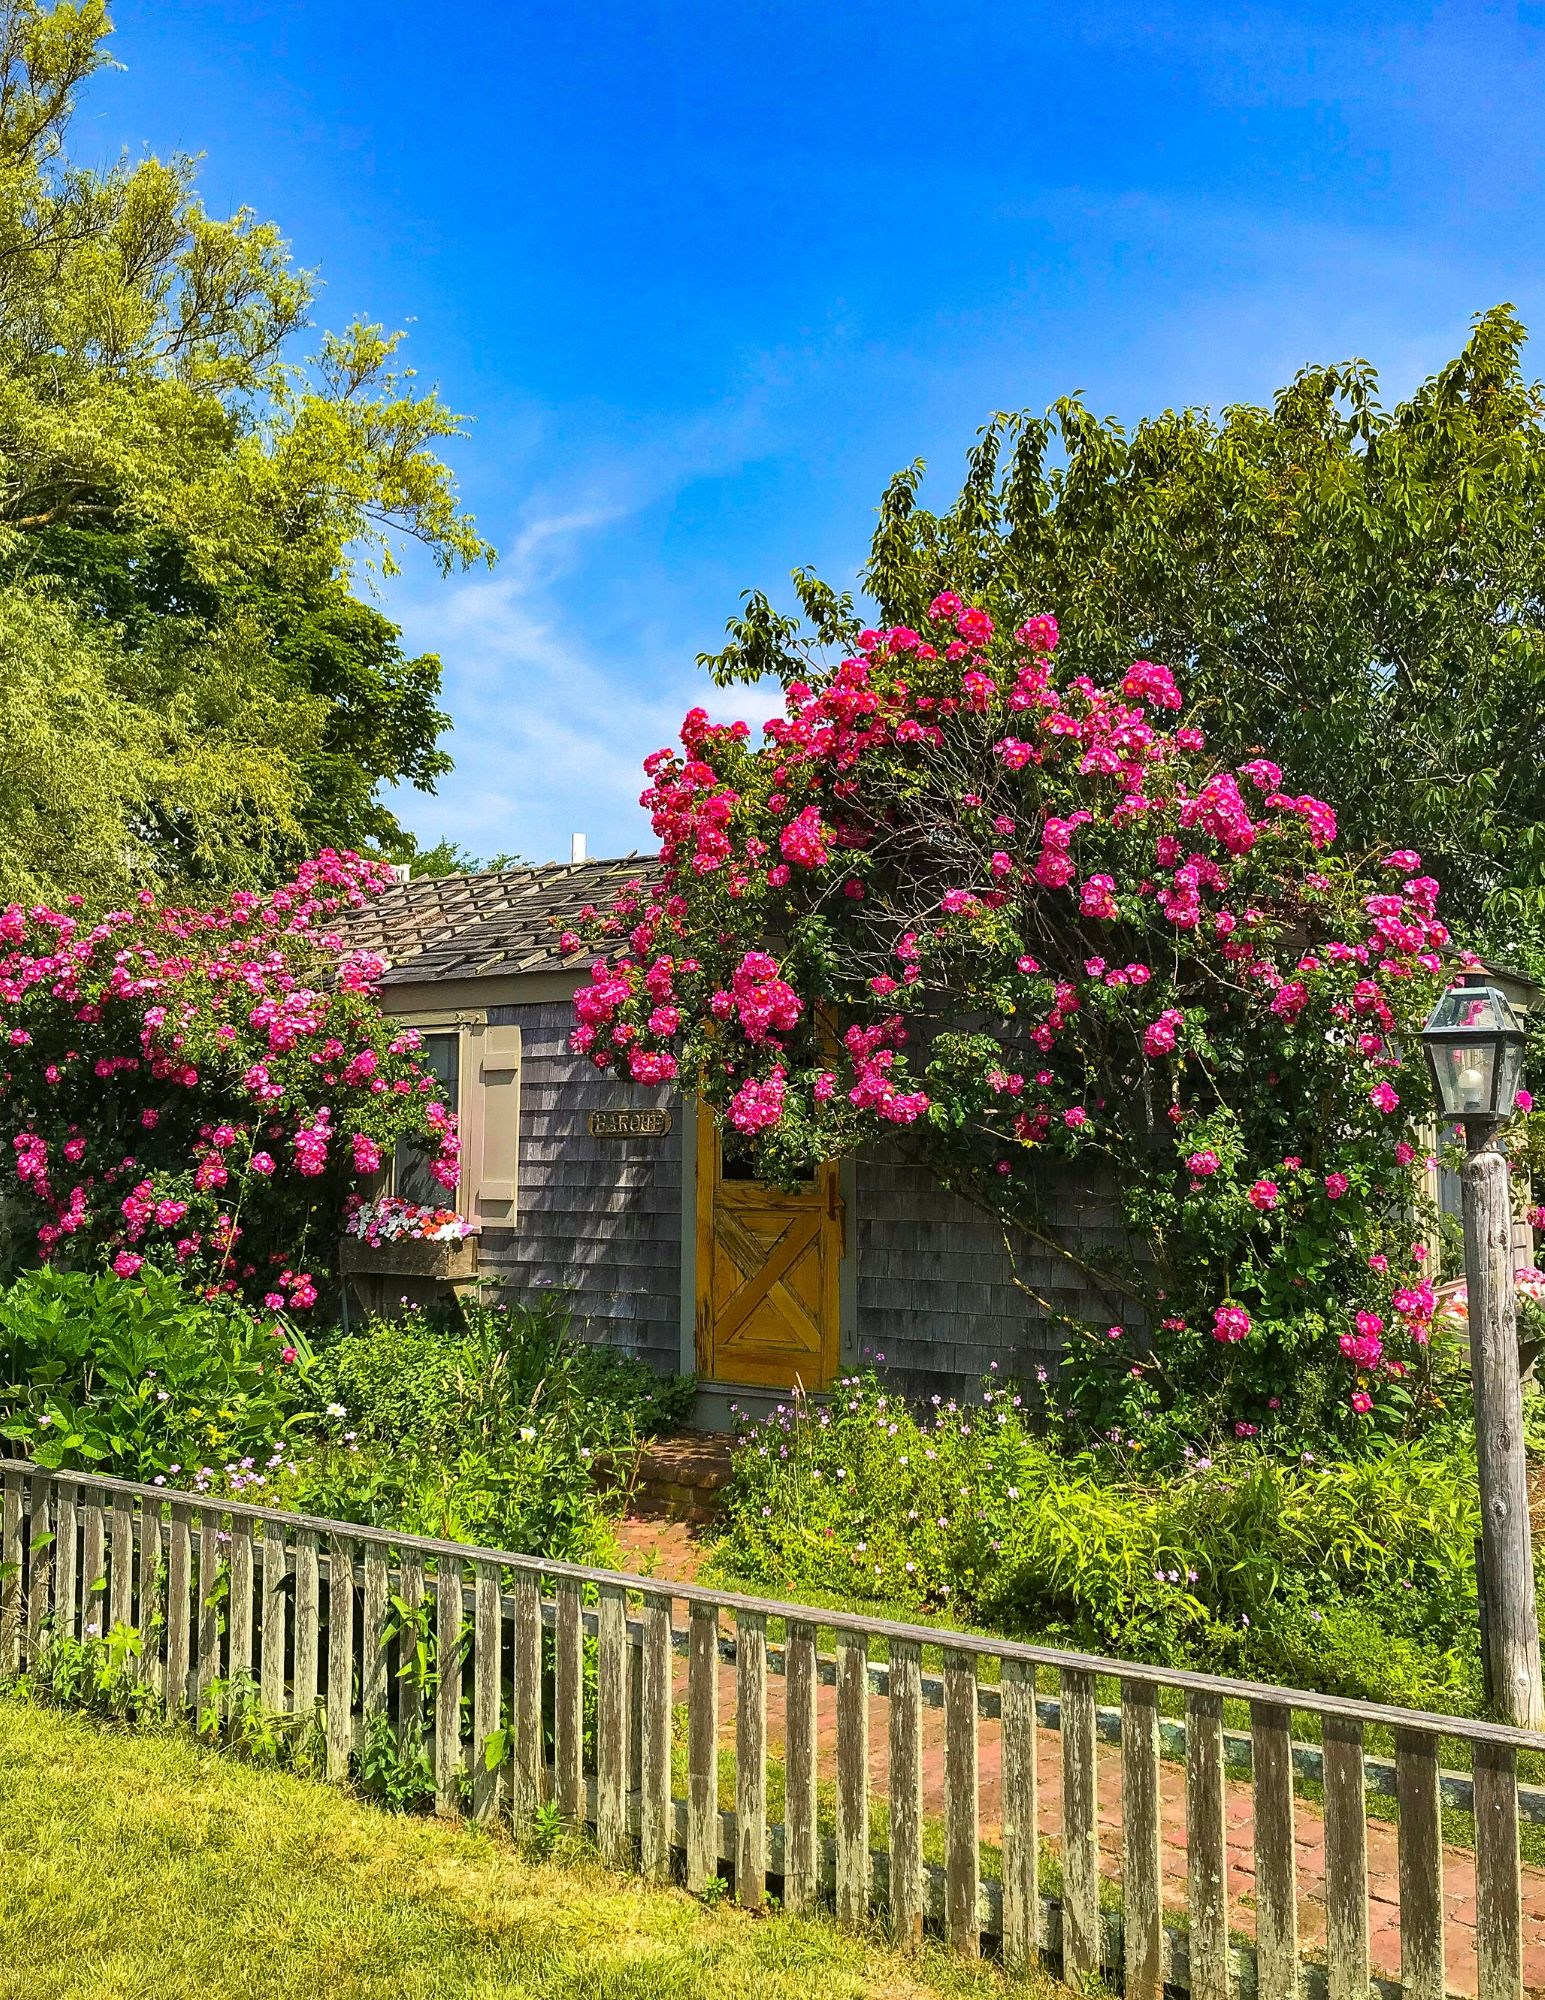 Nantucket Rose Covered Cottages in Sconset-23